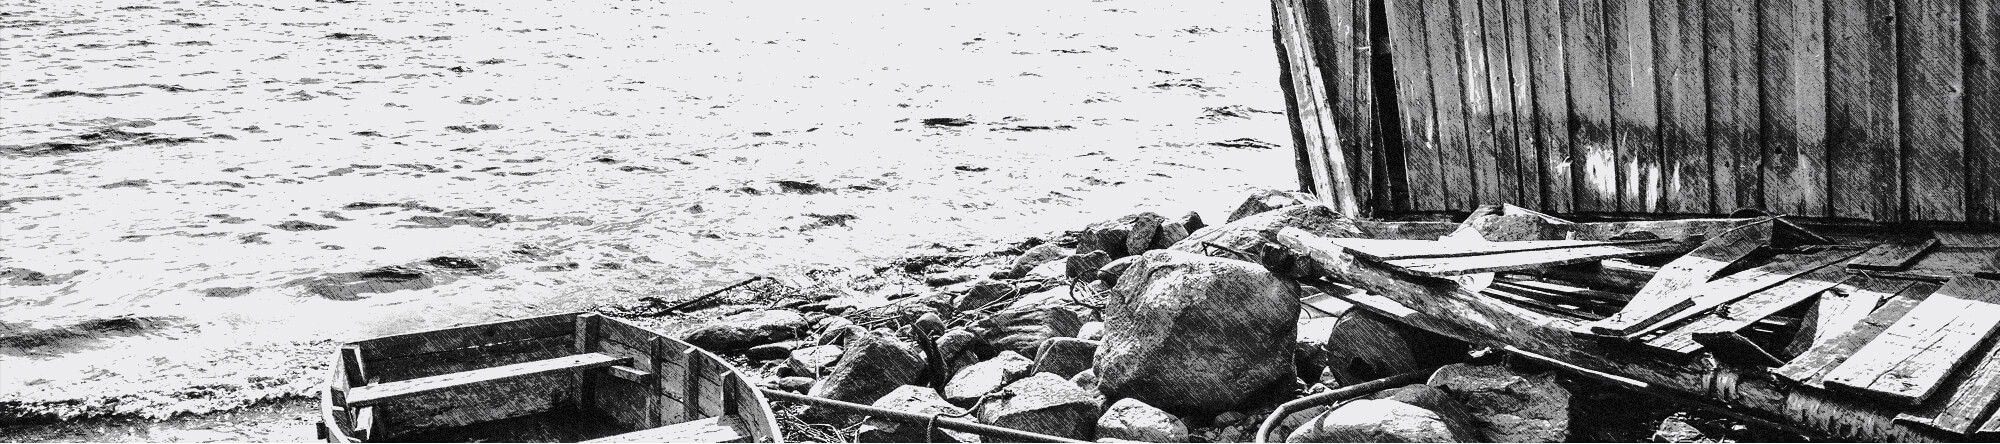 Dry Dock 28 black and white rocky shoreline with boat